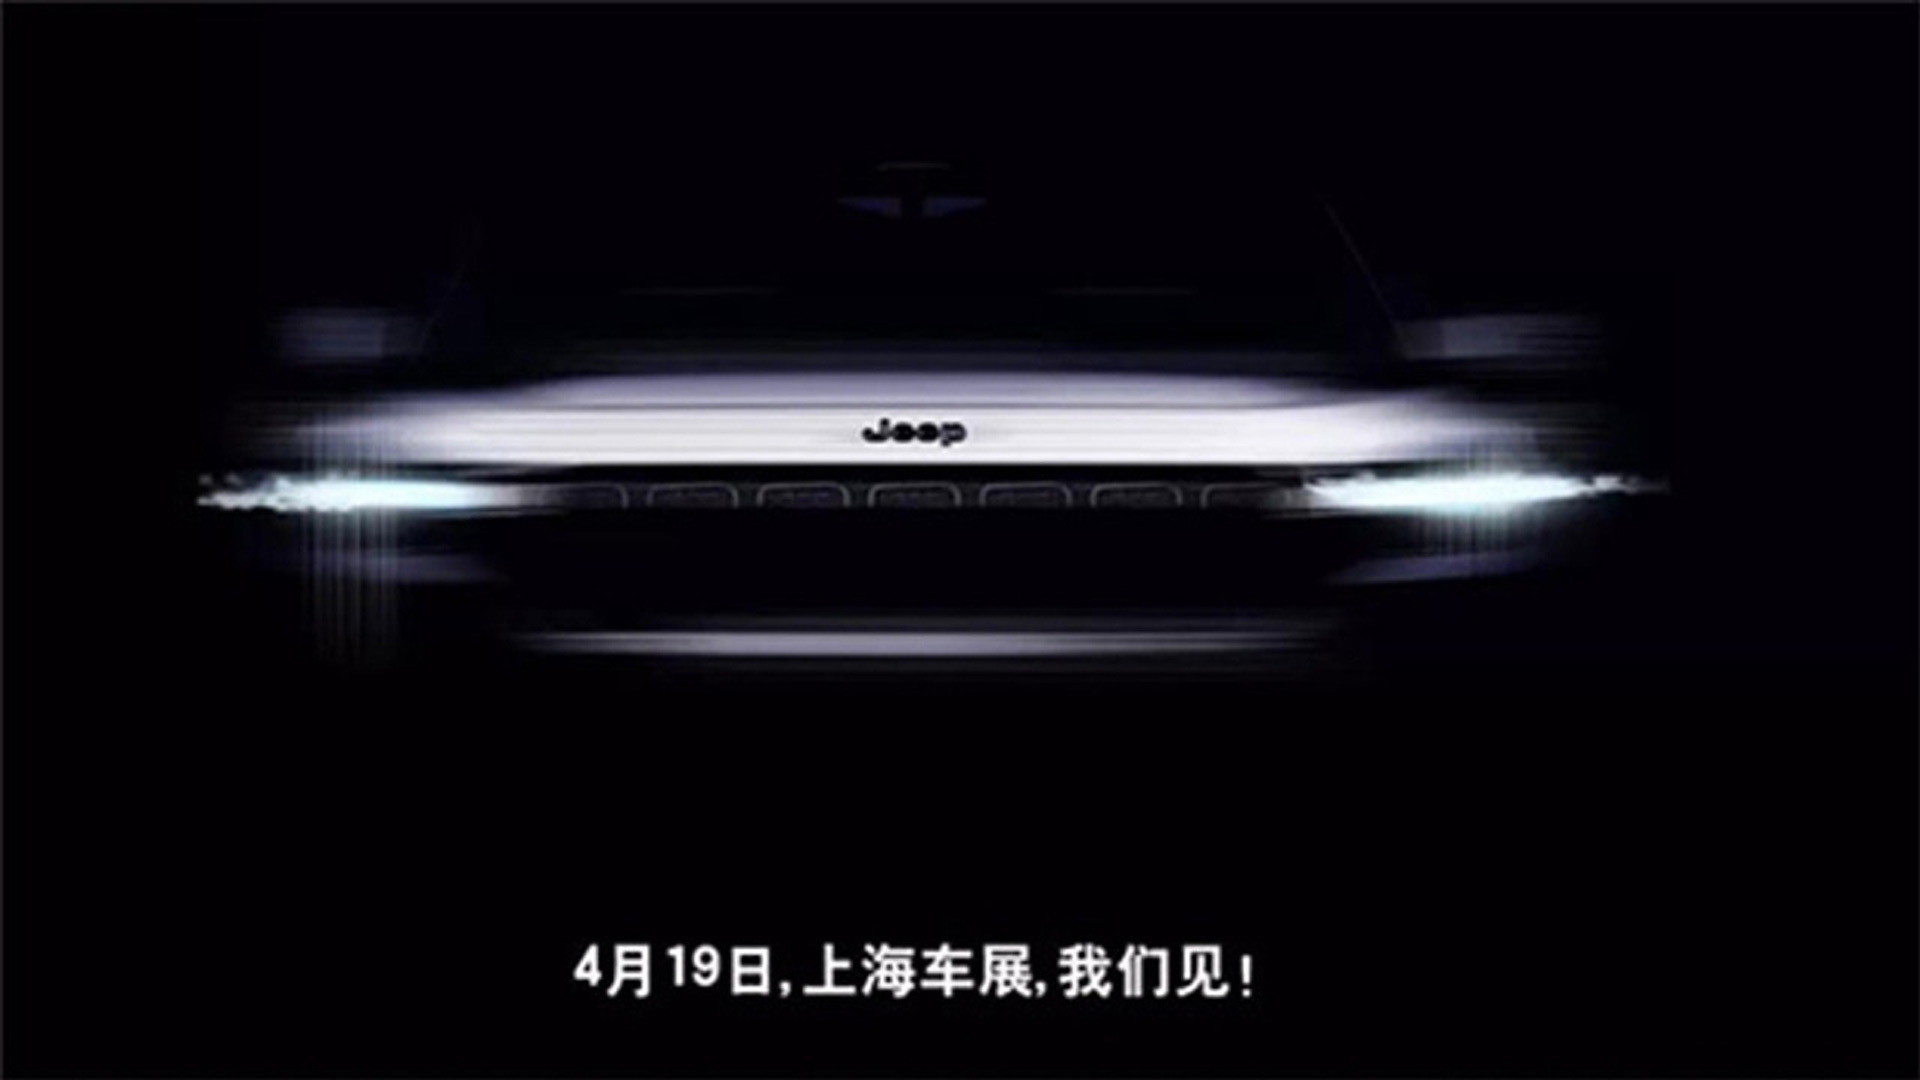 Teaser for Jeep concept debuting at 2017 Shanghai auto show